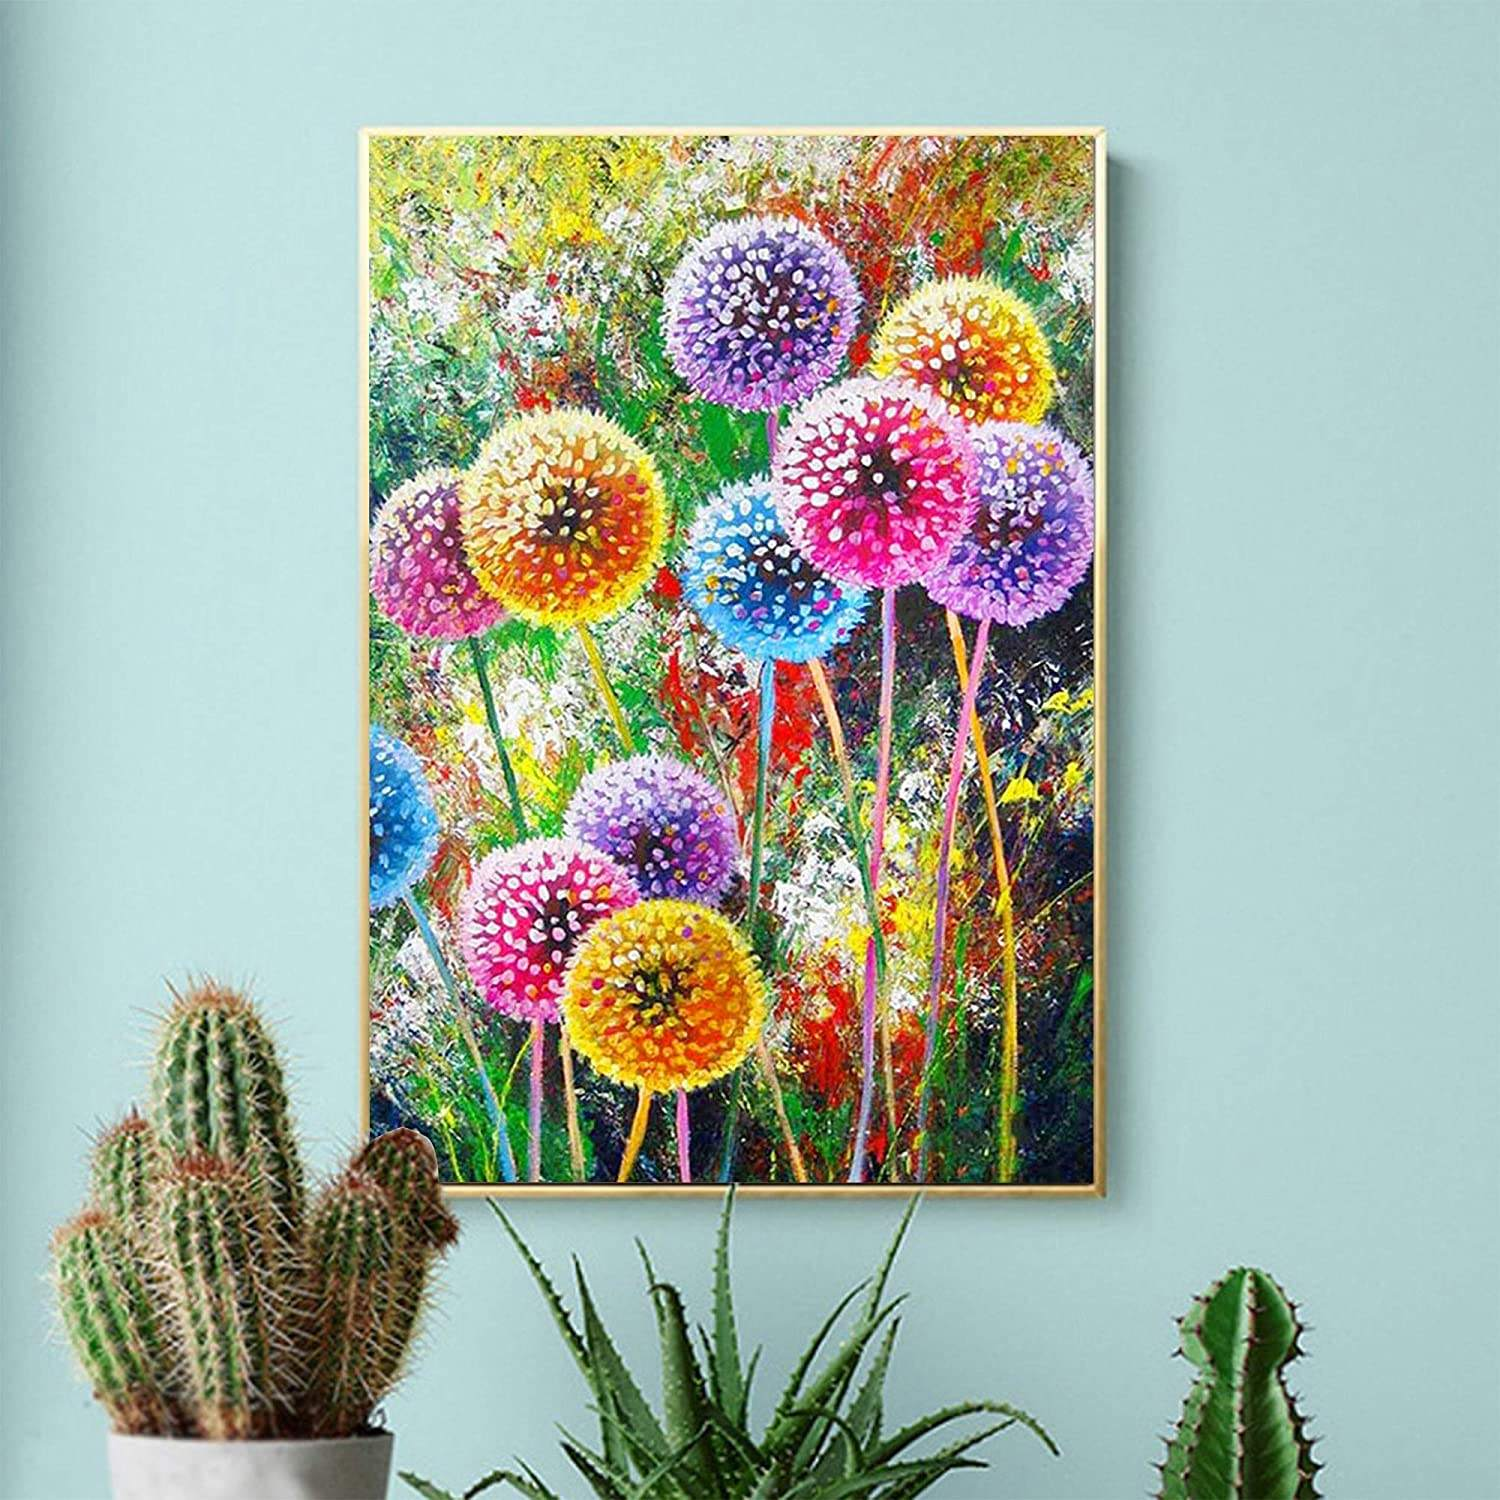 Meian Flower Full Drill Diy Diamond Embroidery Display Dandelion Picture Of Rhinestone Paintings Mosaic Home Decor Gift